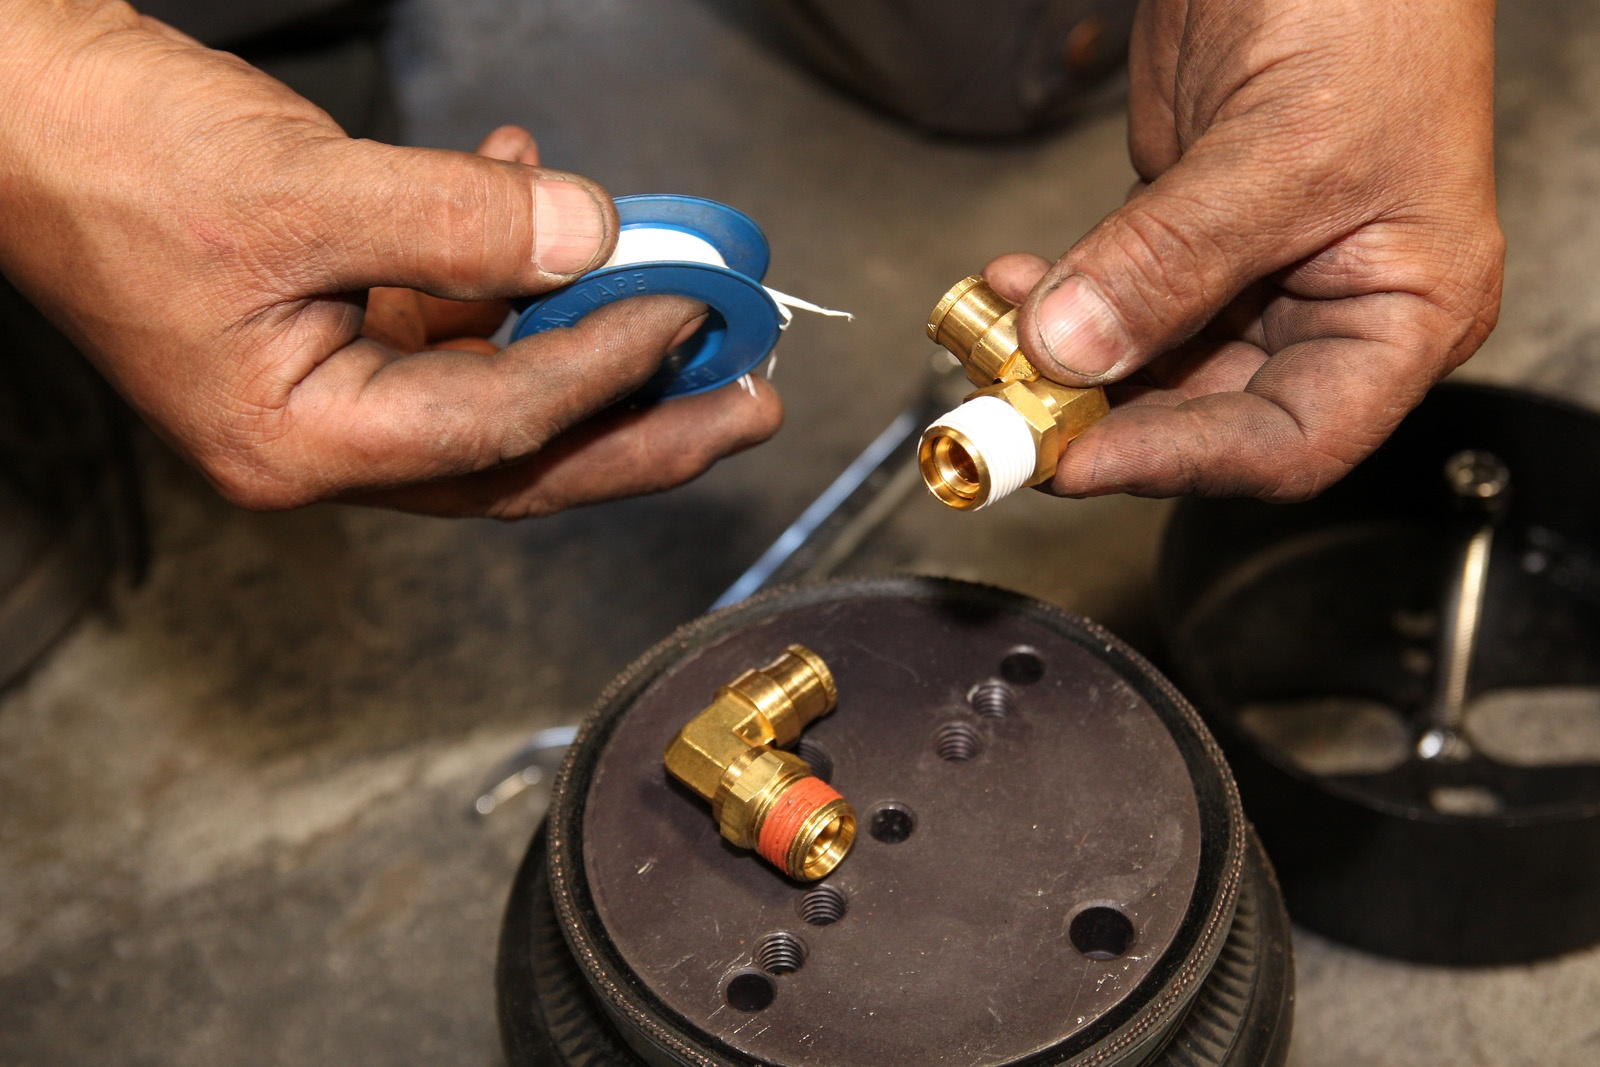 How to start a plumbing business - a plumbers guide